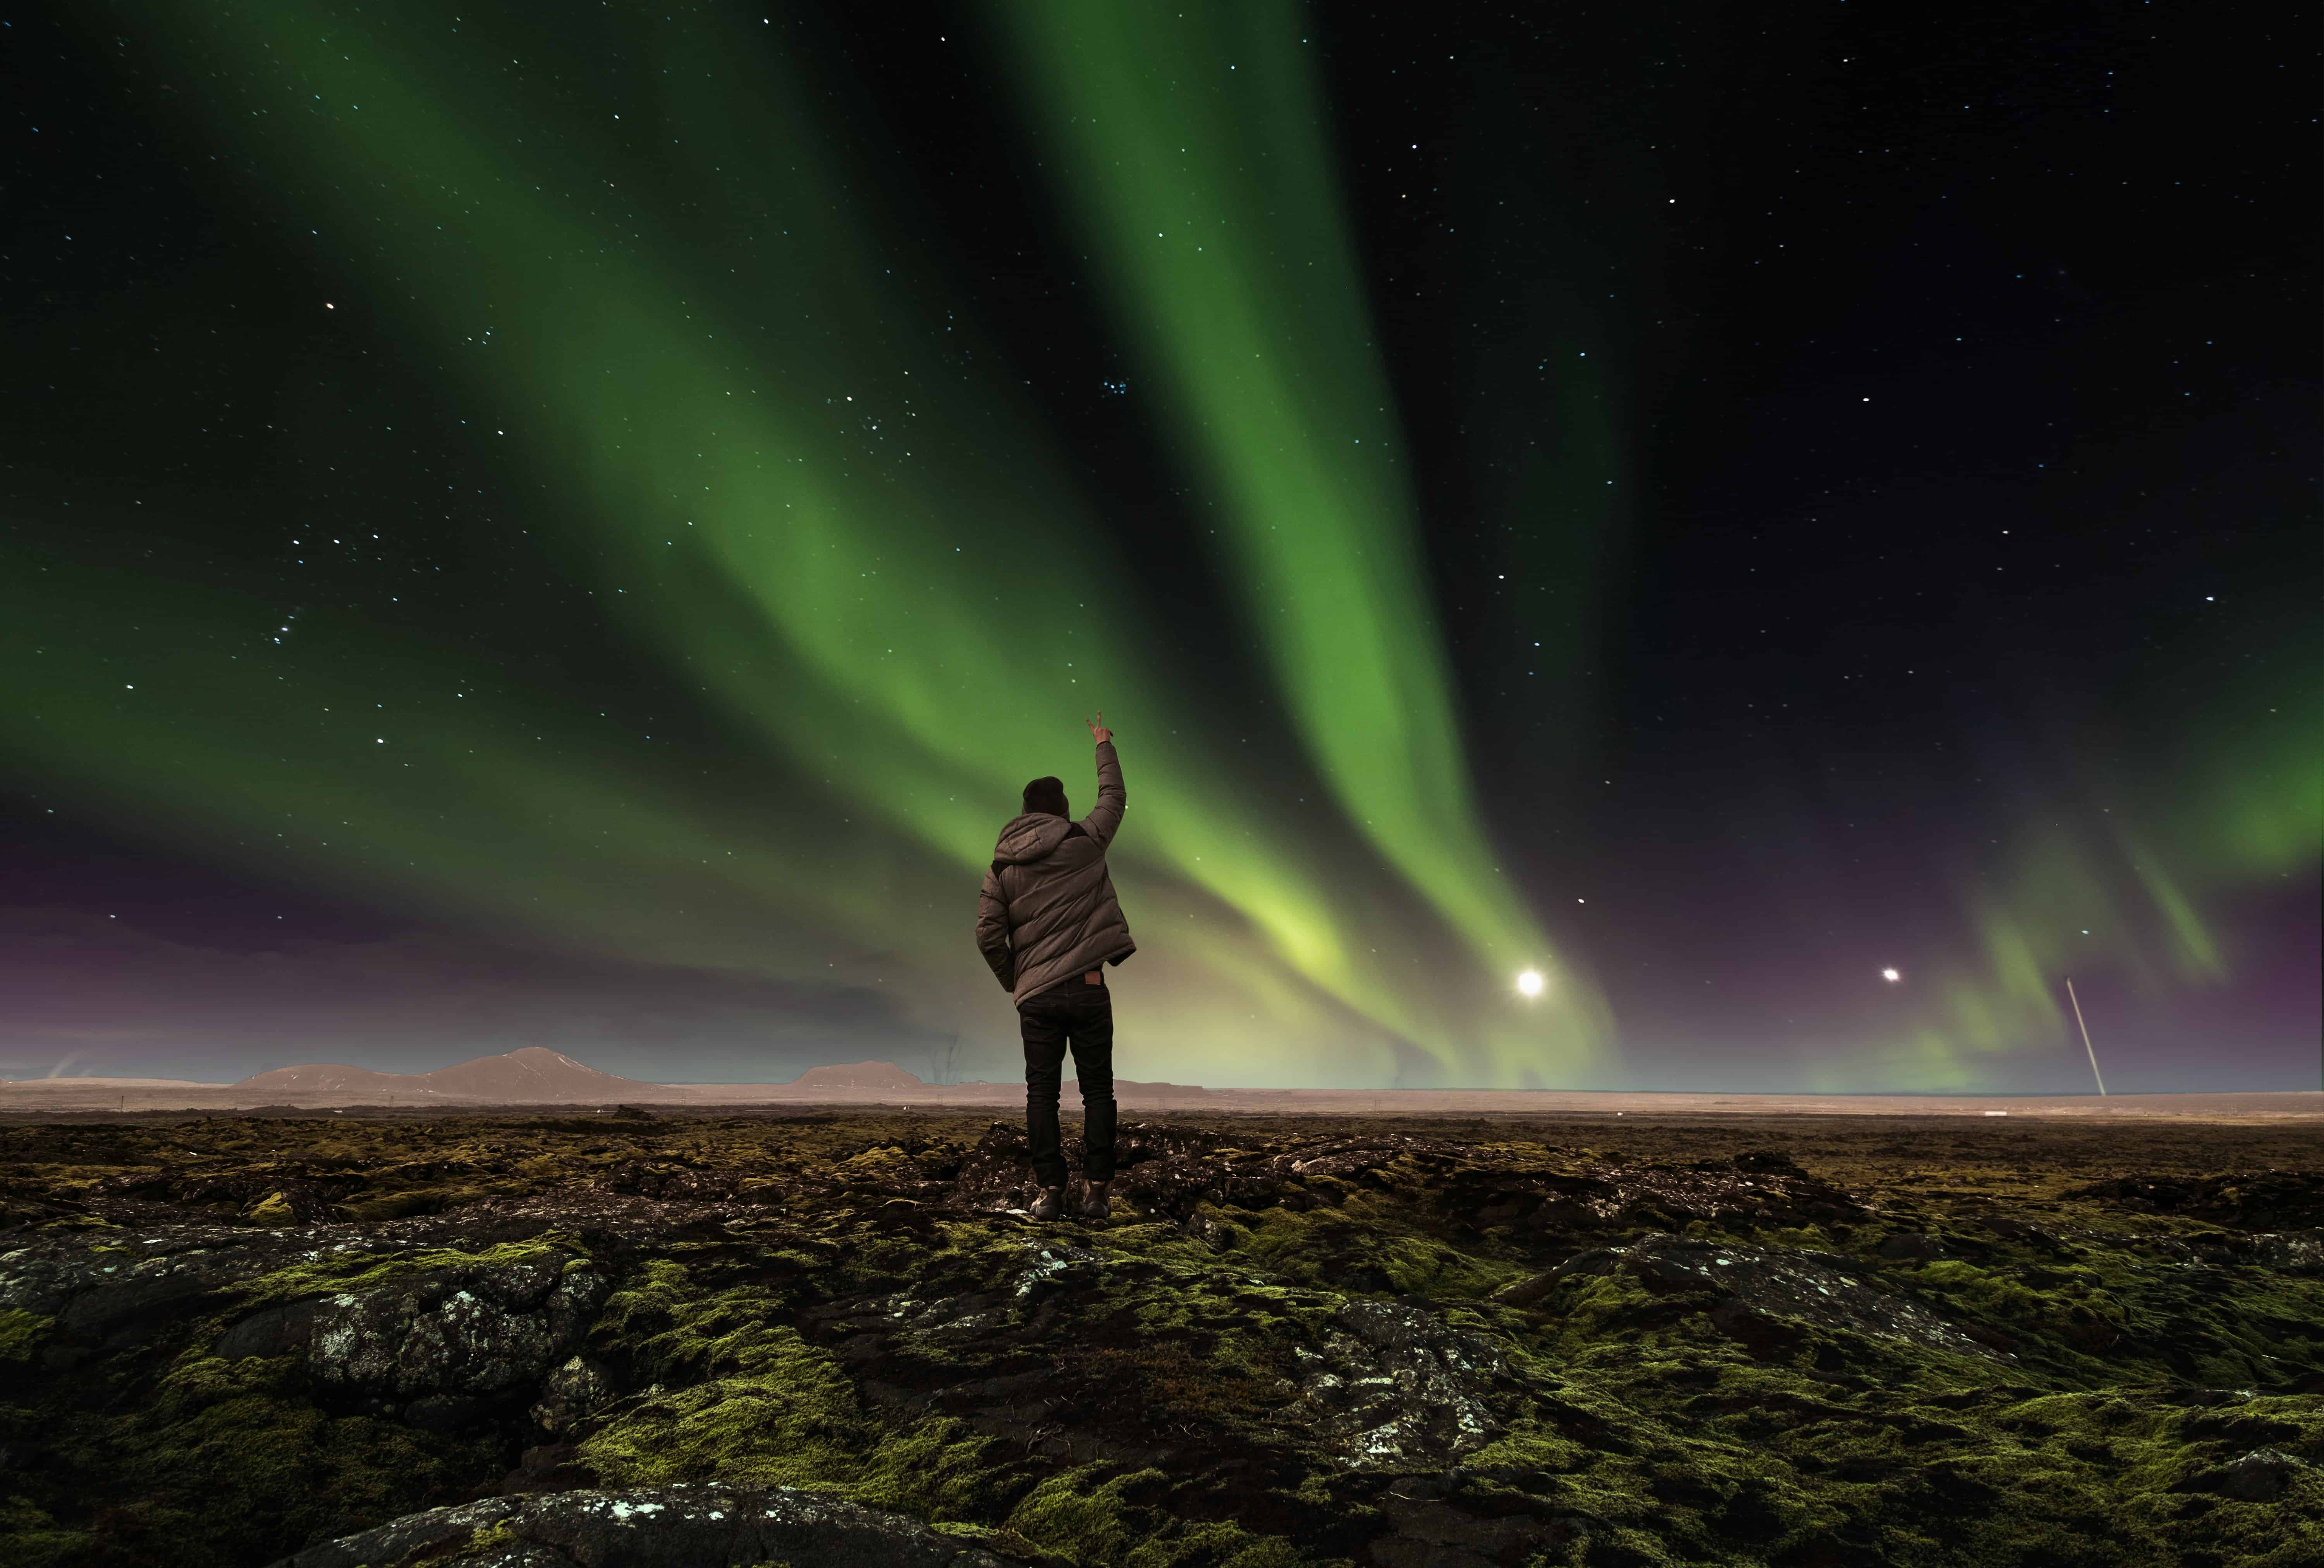 Man in a Lava Field in Iceland Raising His Arm to the Sky With Dancing Northern Lights